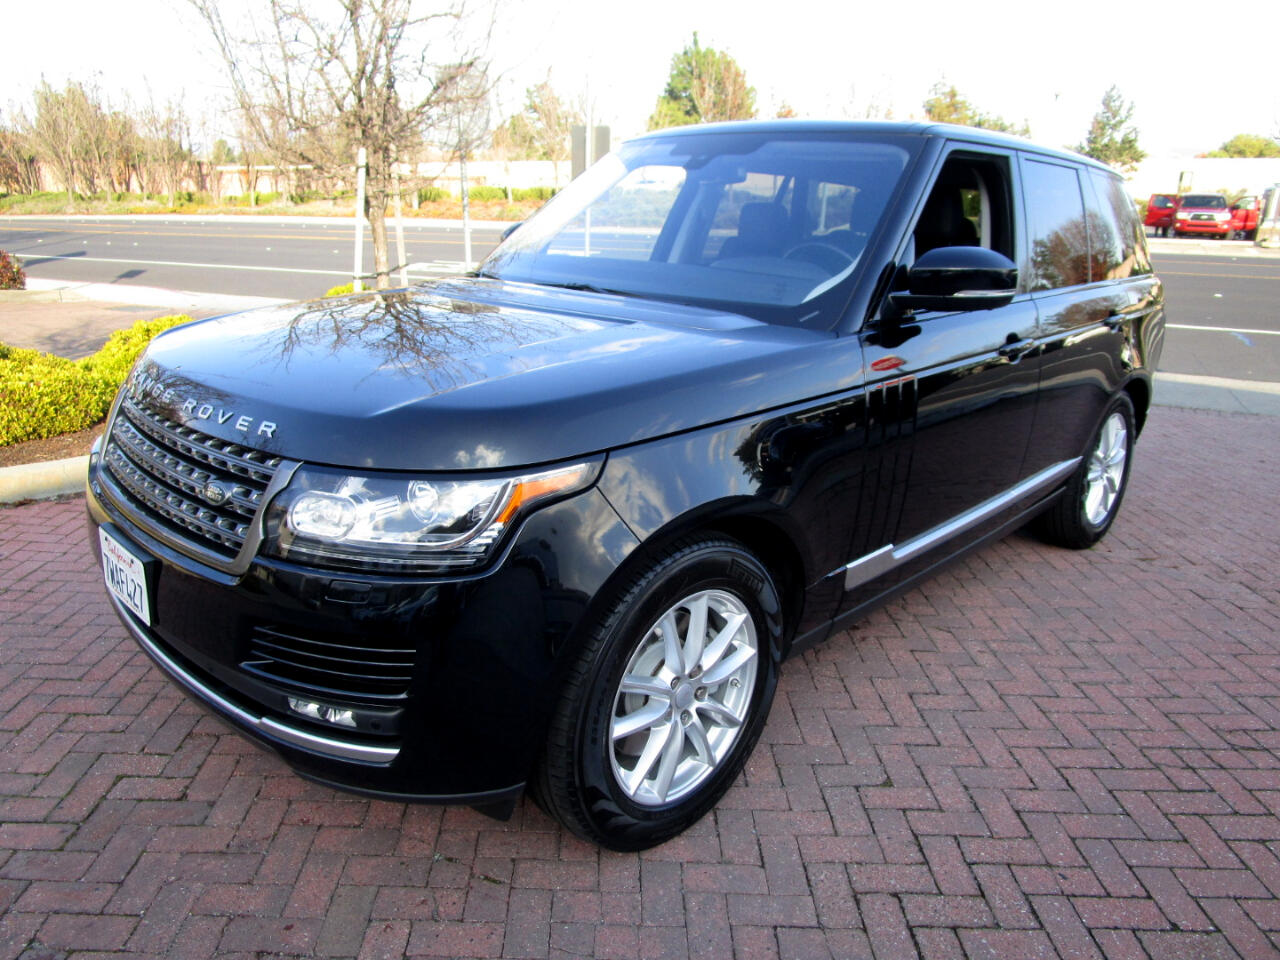 2016 Land Rover Range Rover TD6 DIESEL**HEAT SEATS/STERING WHEEL*PANO ROOF*